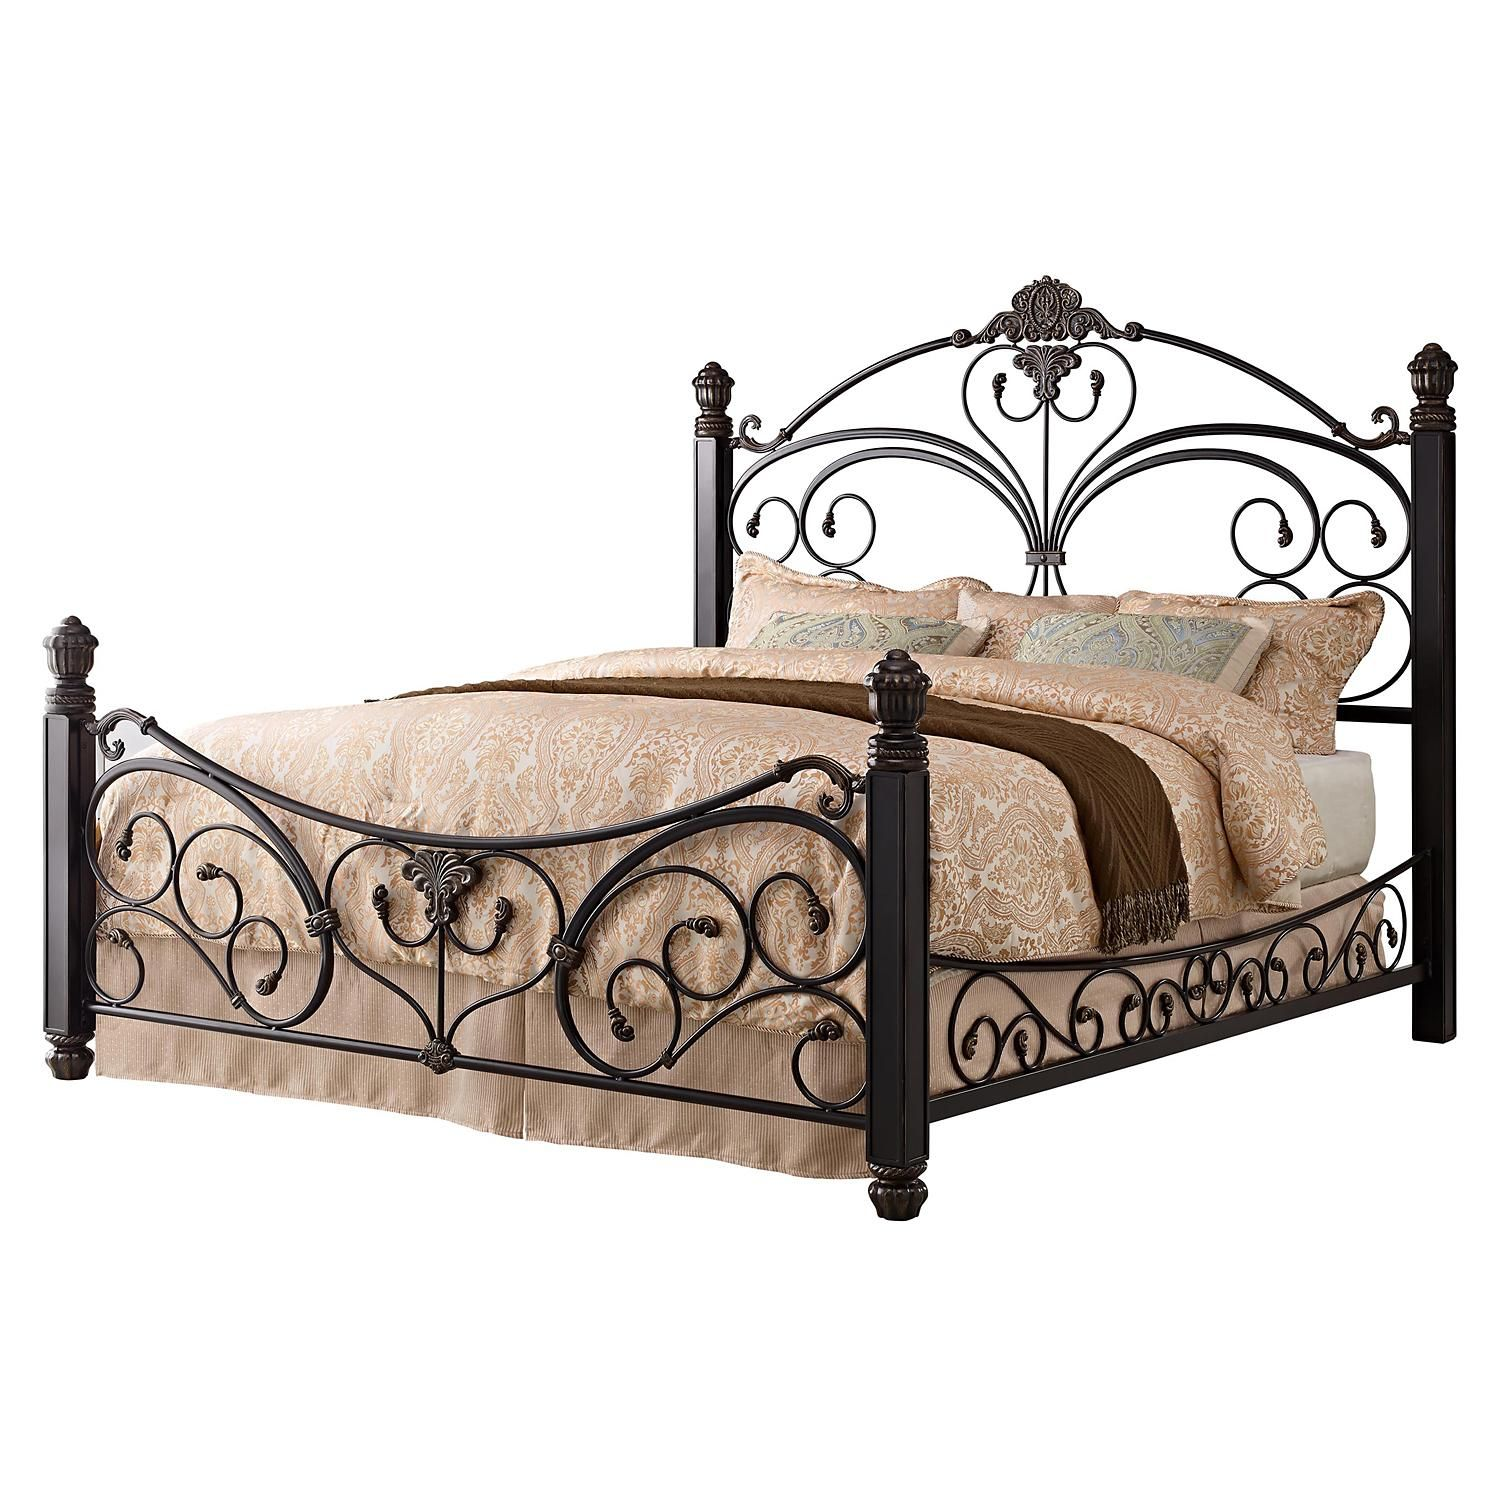 Alysa Metal King Bed With Decorative Side Rails Sam S Club